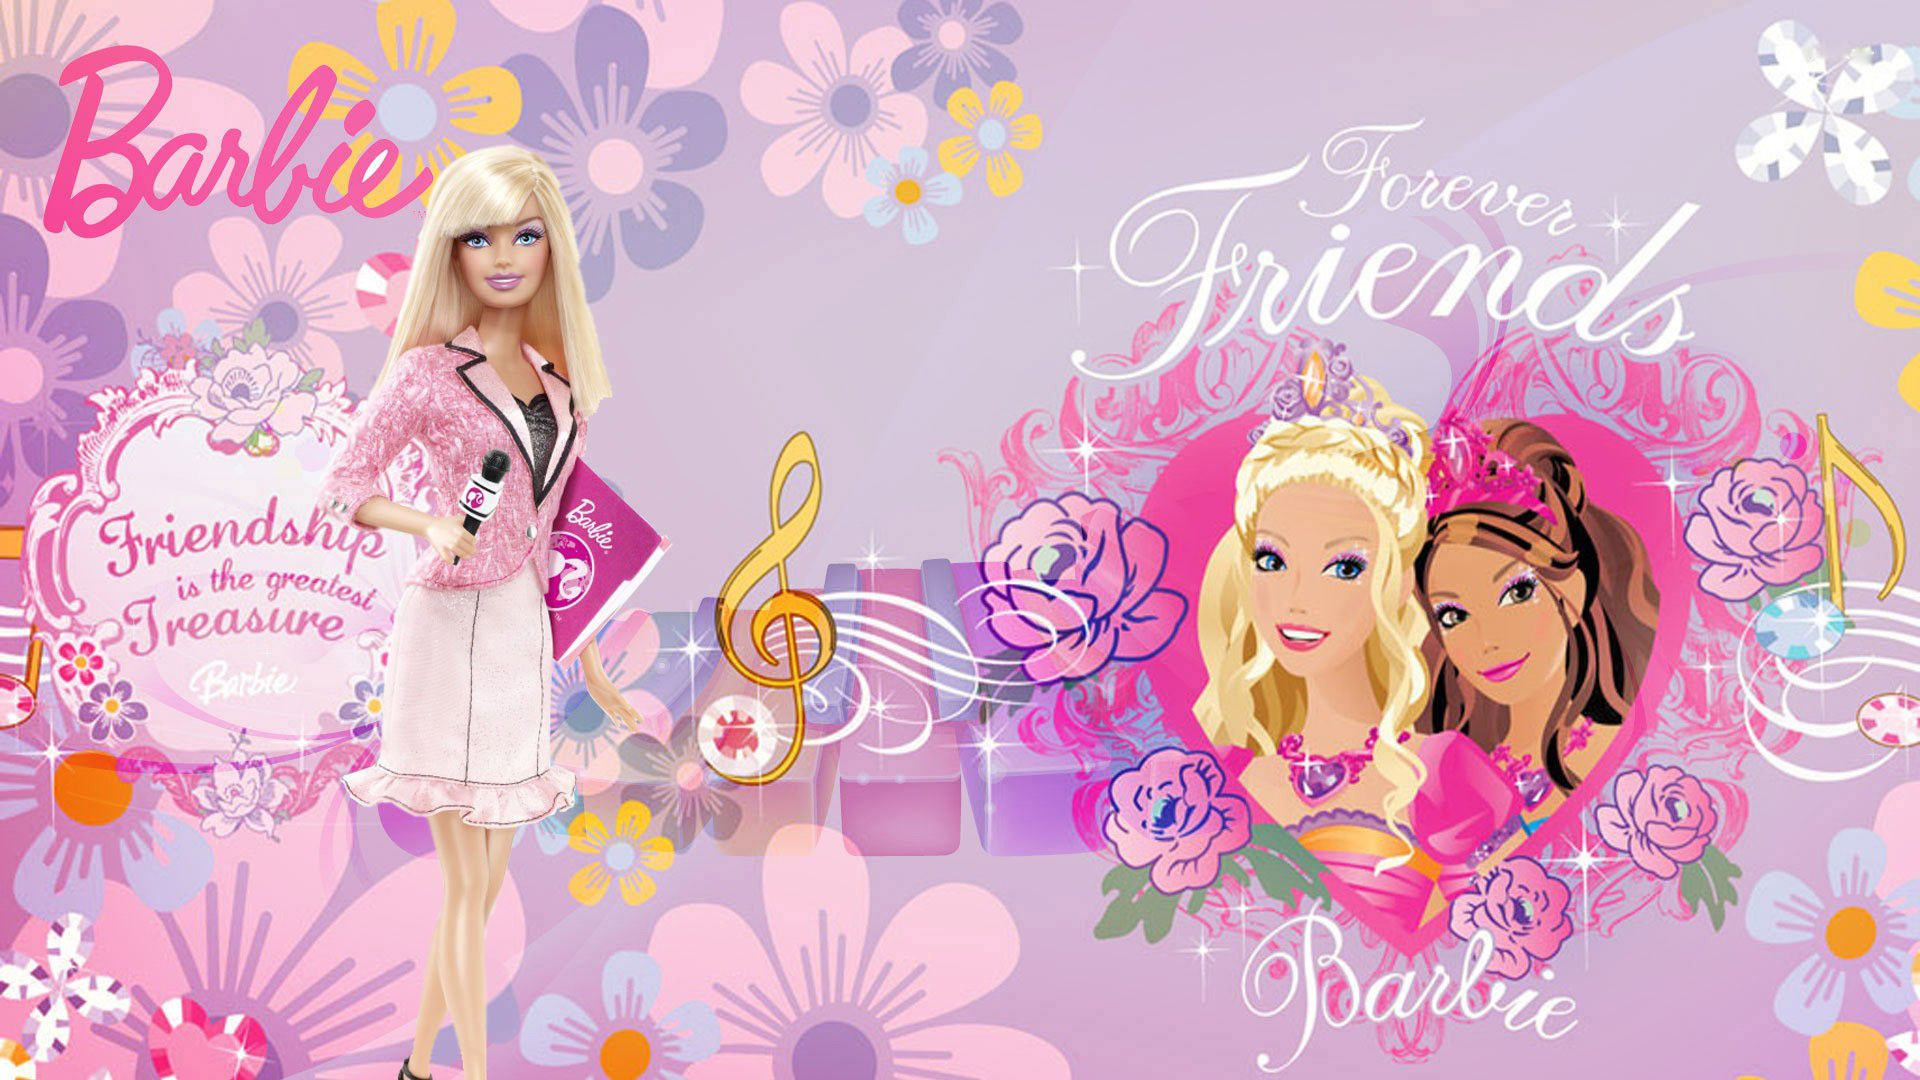 Barbie doll wallpapers gallery rocks wallpaper hd 1024 768 - Barbie pictures download free ...